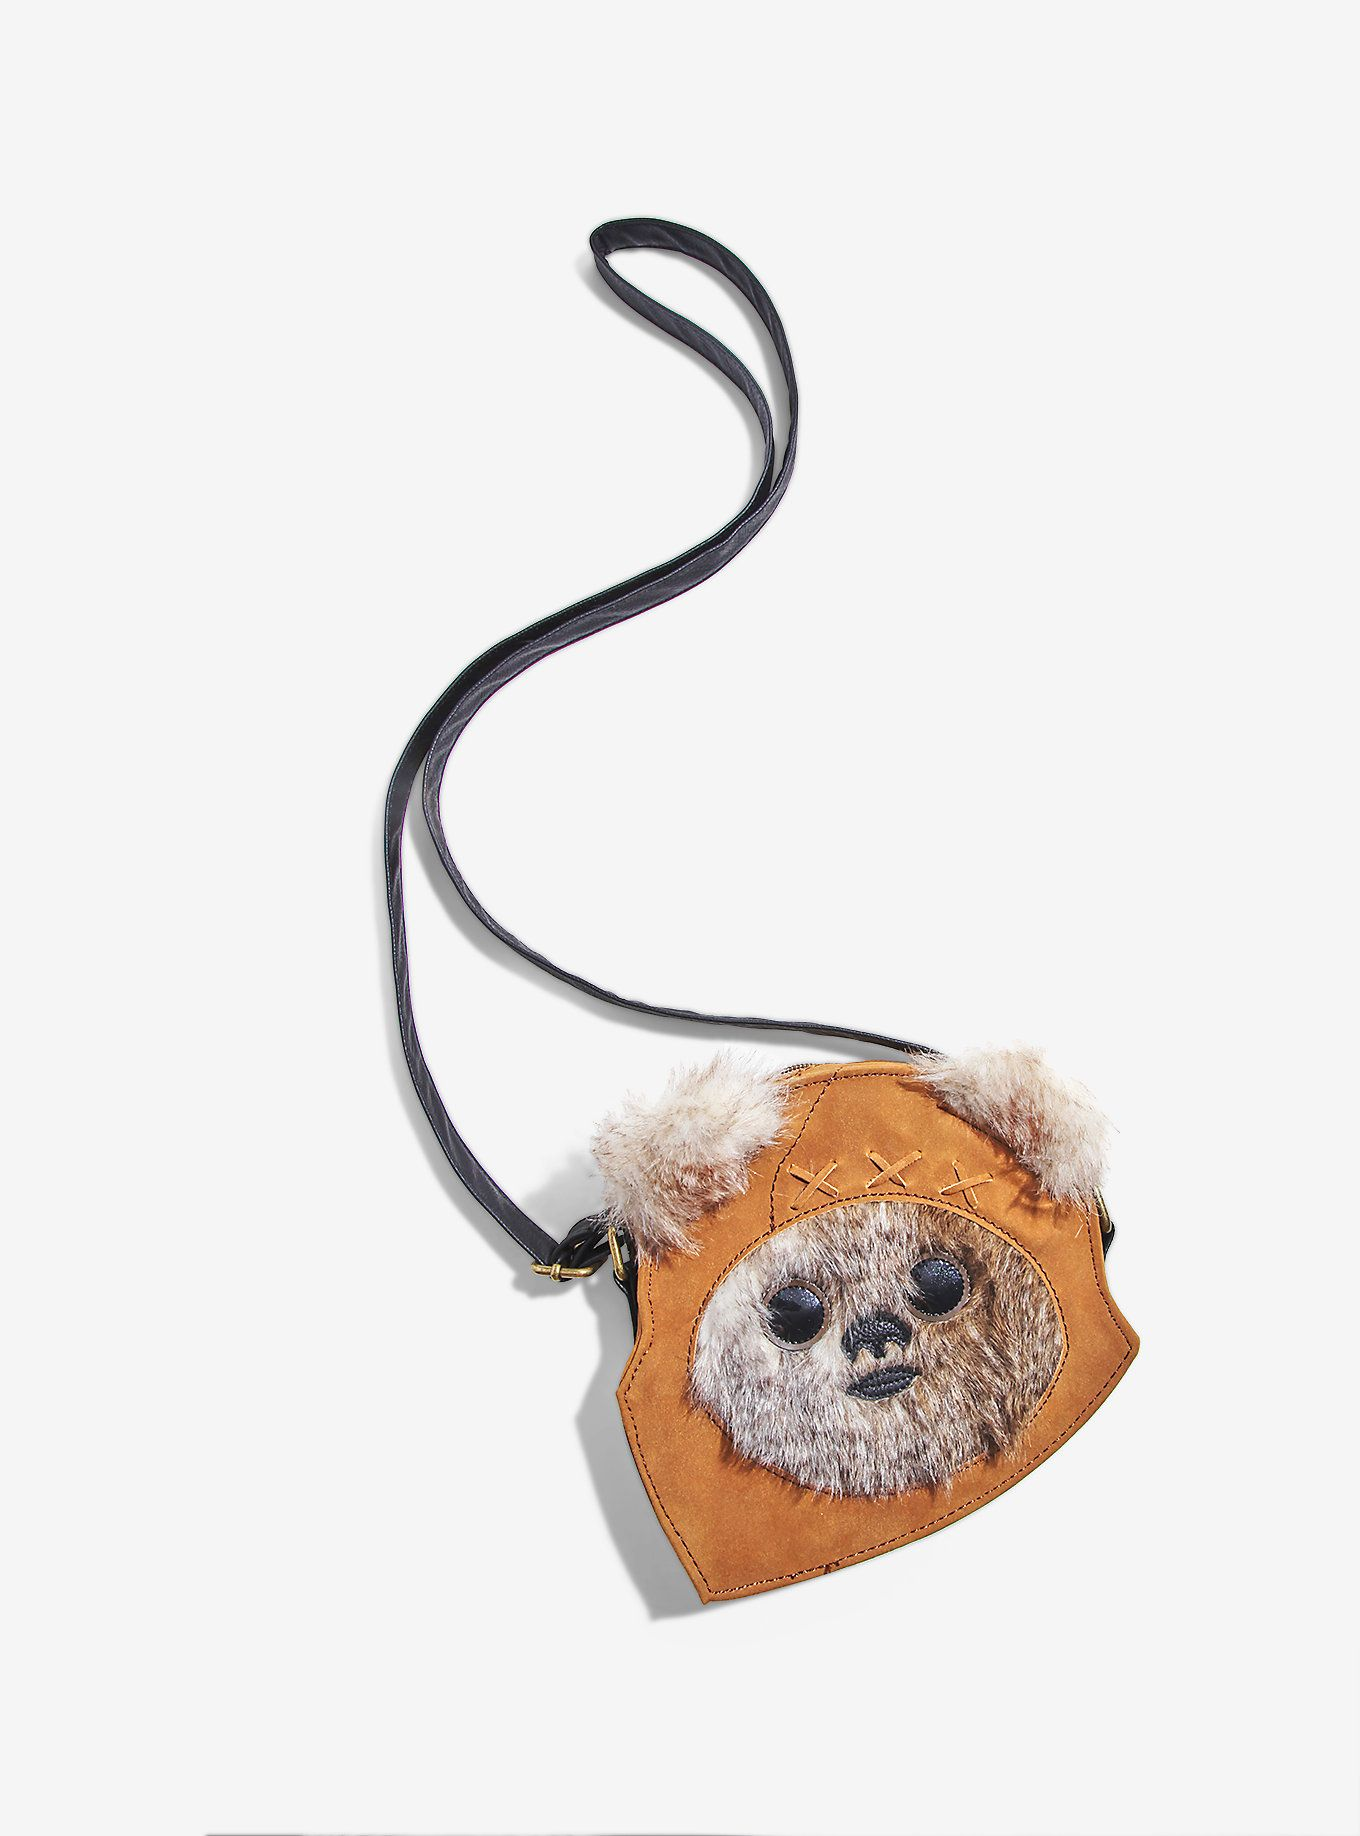 No Ewok was harmed in the making of this bag...